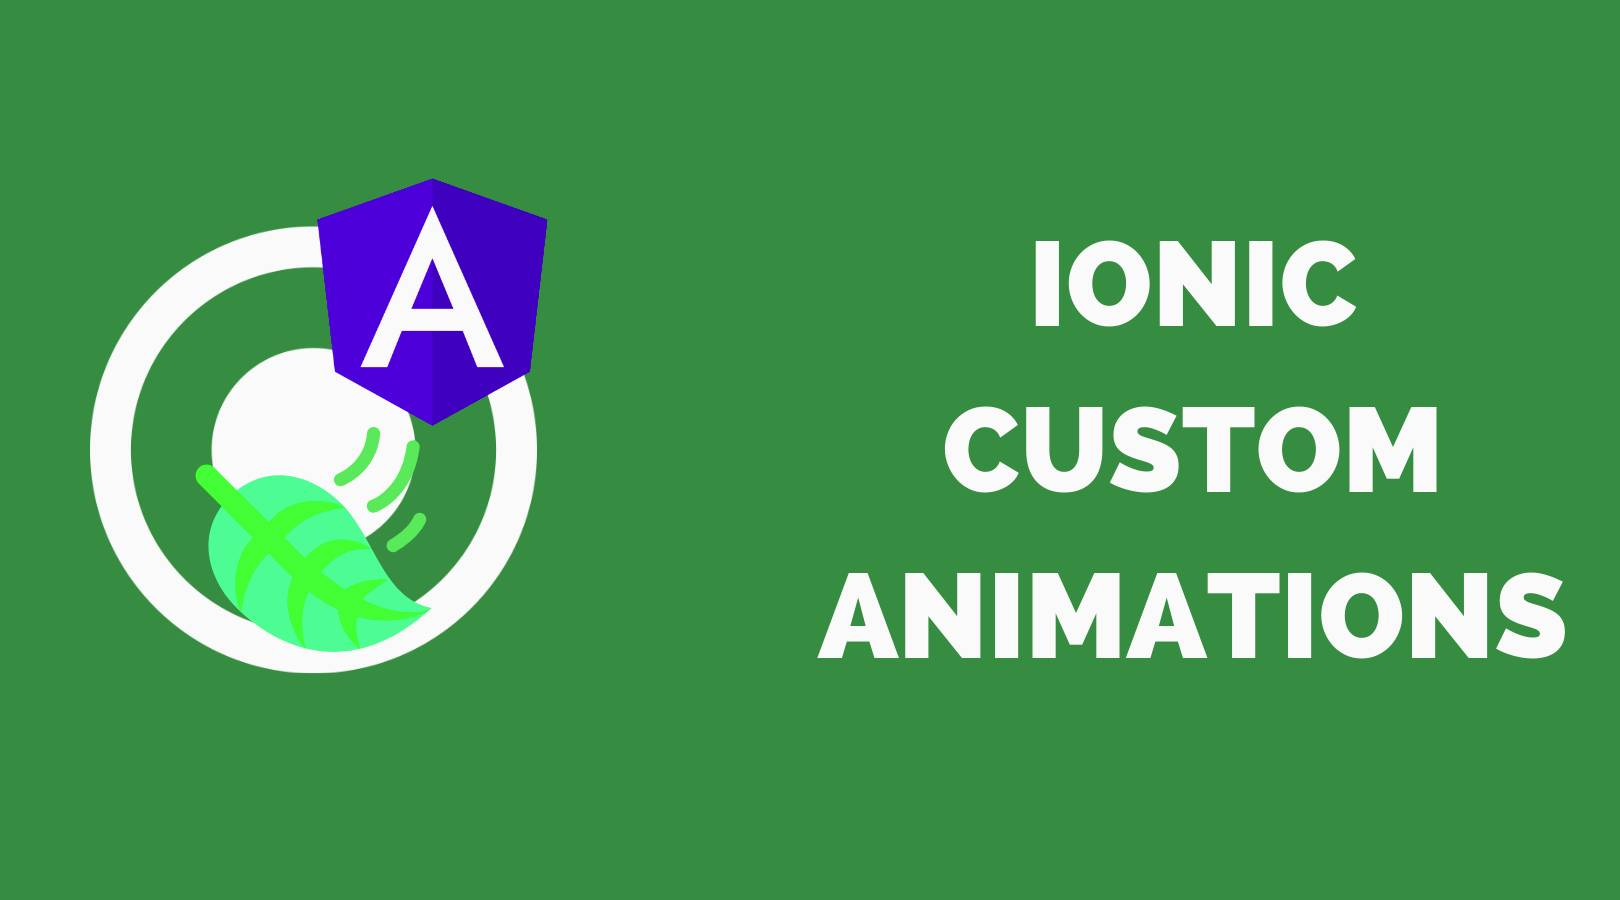 How to add animations in ionic application?